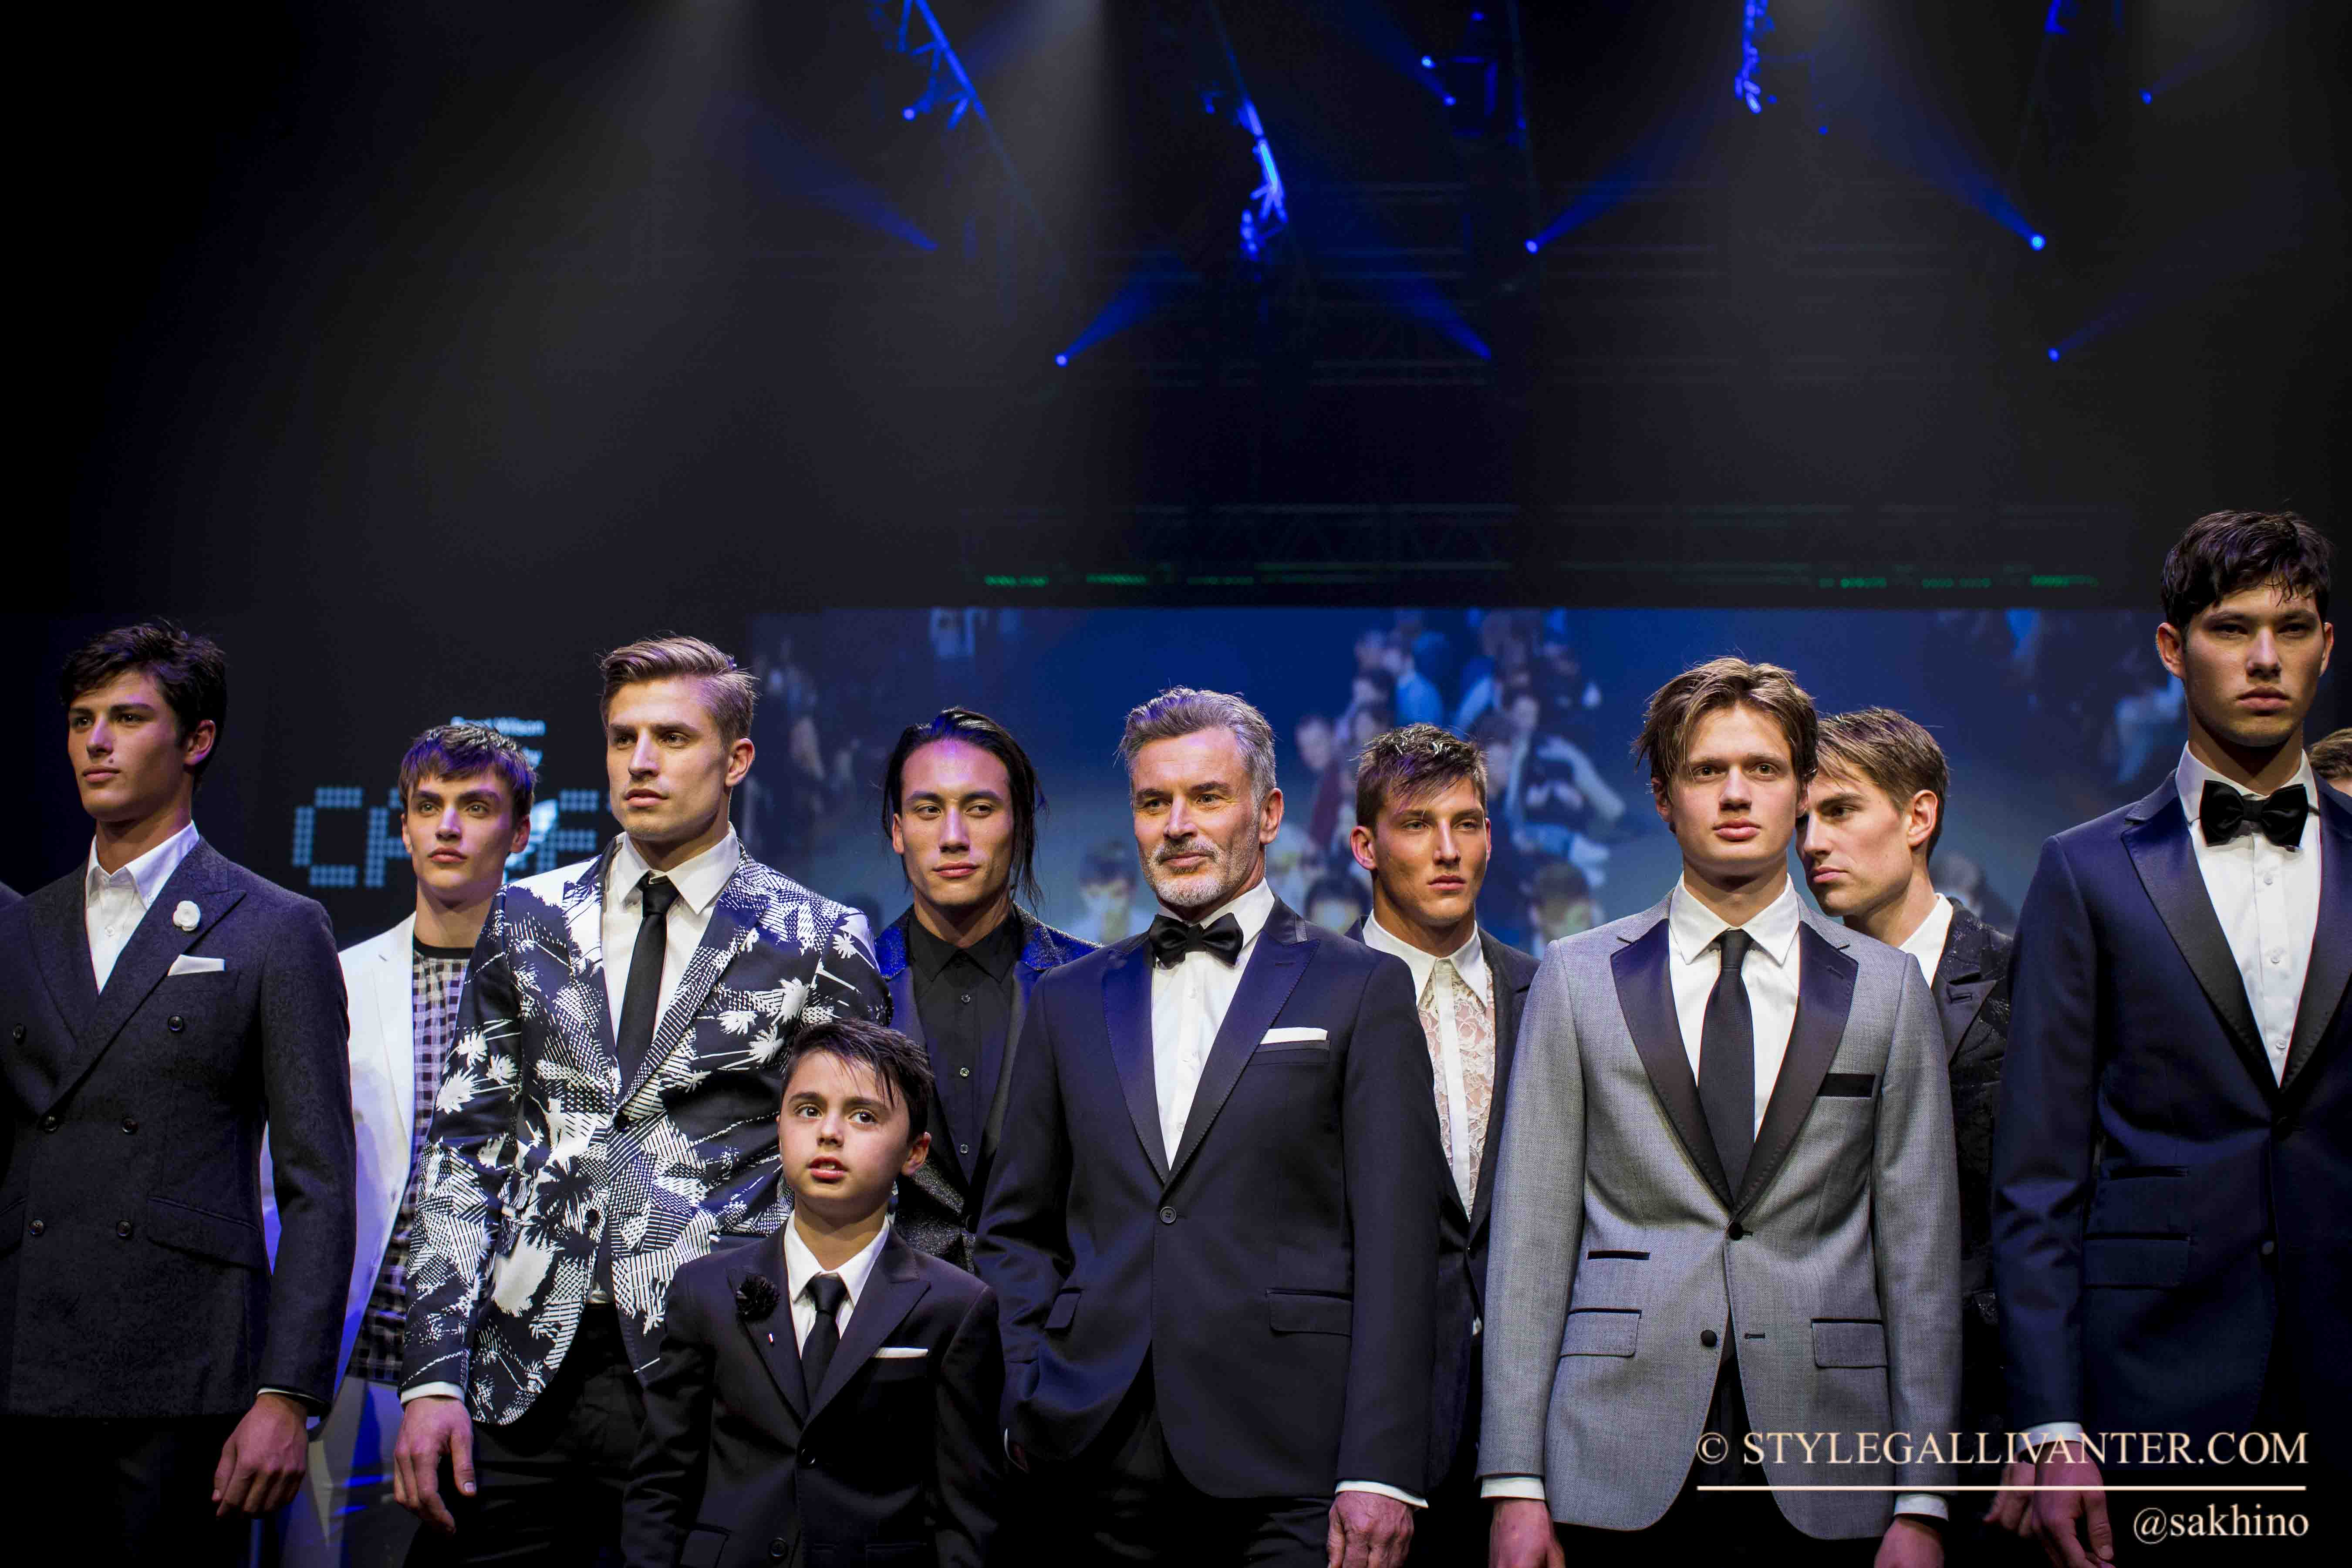 msfw15-mr-runway_msfw2015mr_msfw2015-mr-runway_msfw-fashion-influencers